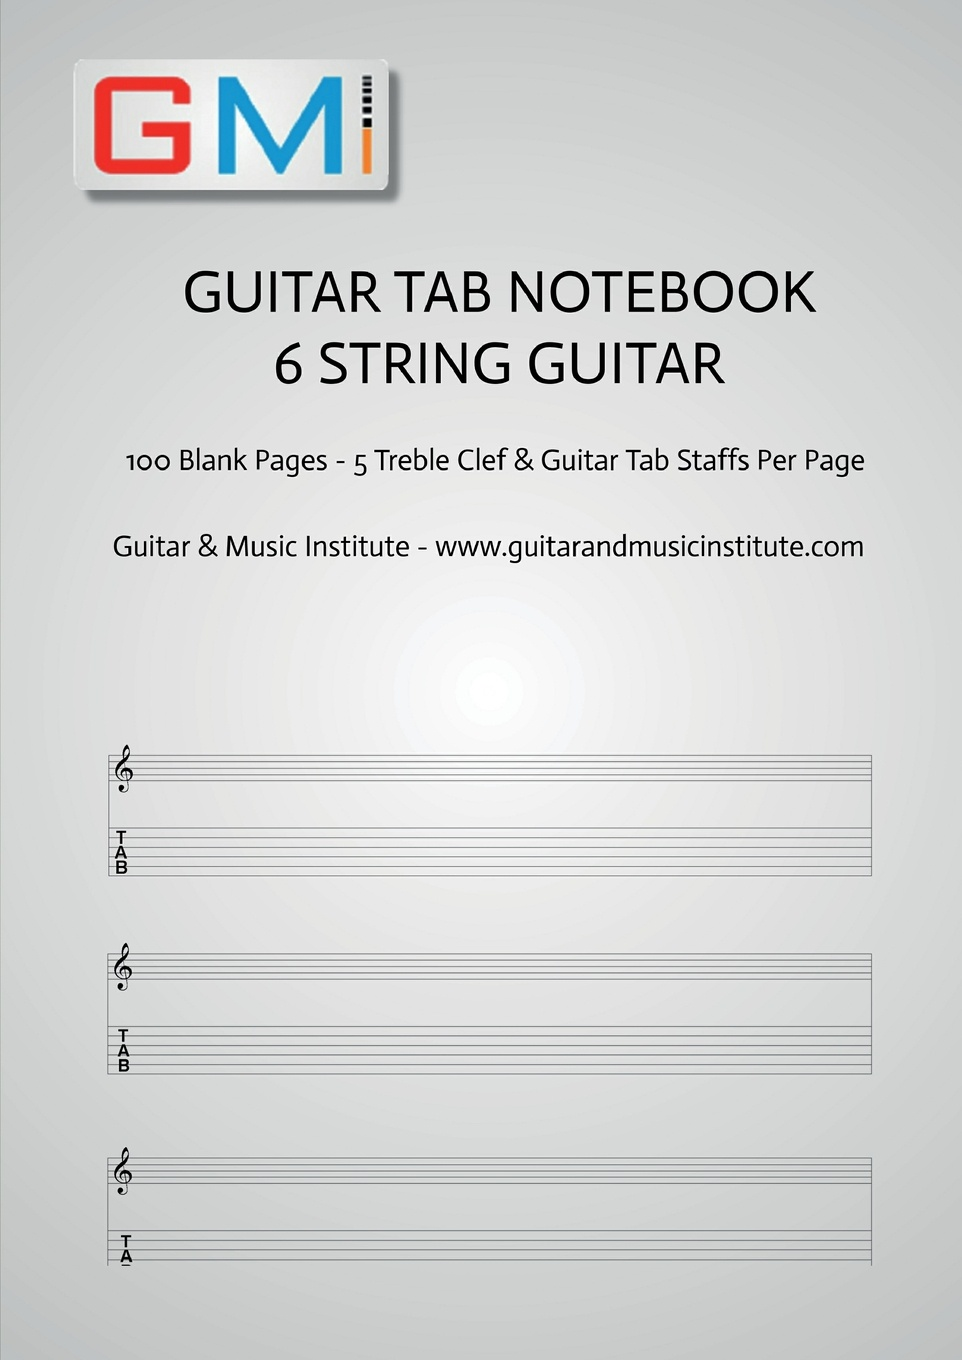 Ged Brockie Guitar Tab Notebook - 6 string guitar. 100 pages of blank treble clef and six string TAB for guitar